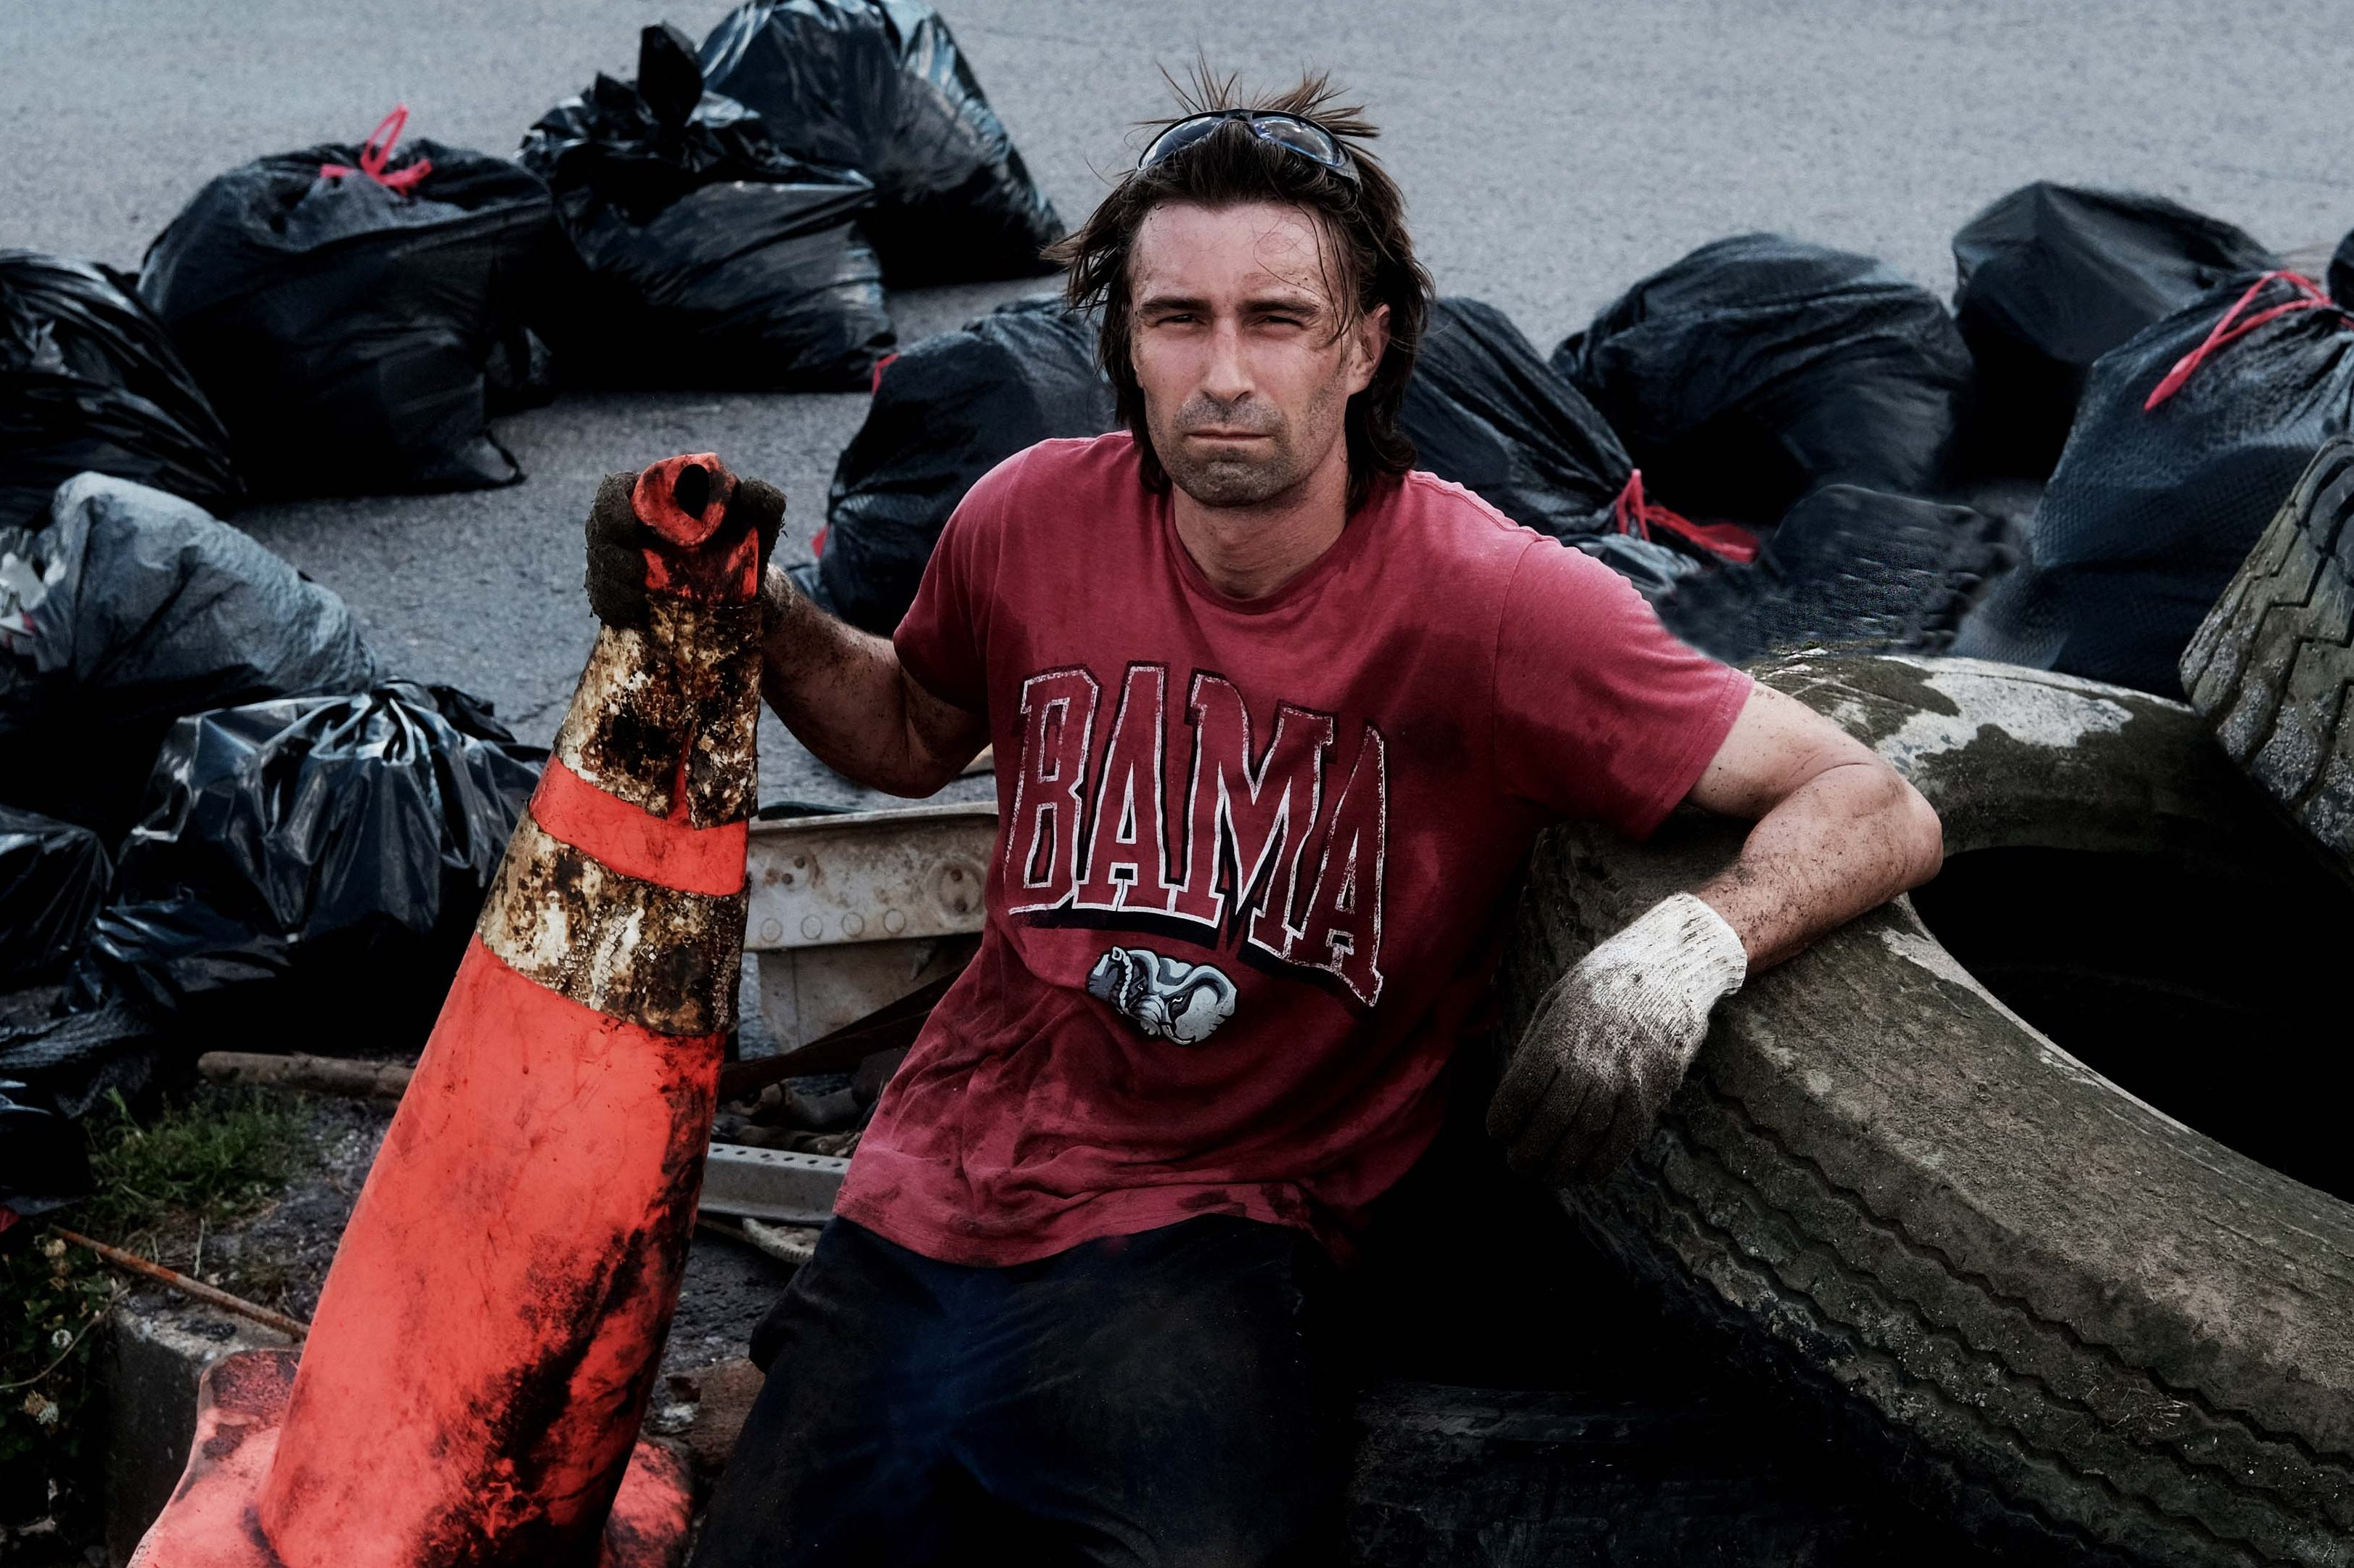 David Whiteside sits among garbage bags of collected litter, along with tires and a traffic cone, during a river cleanup.